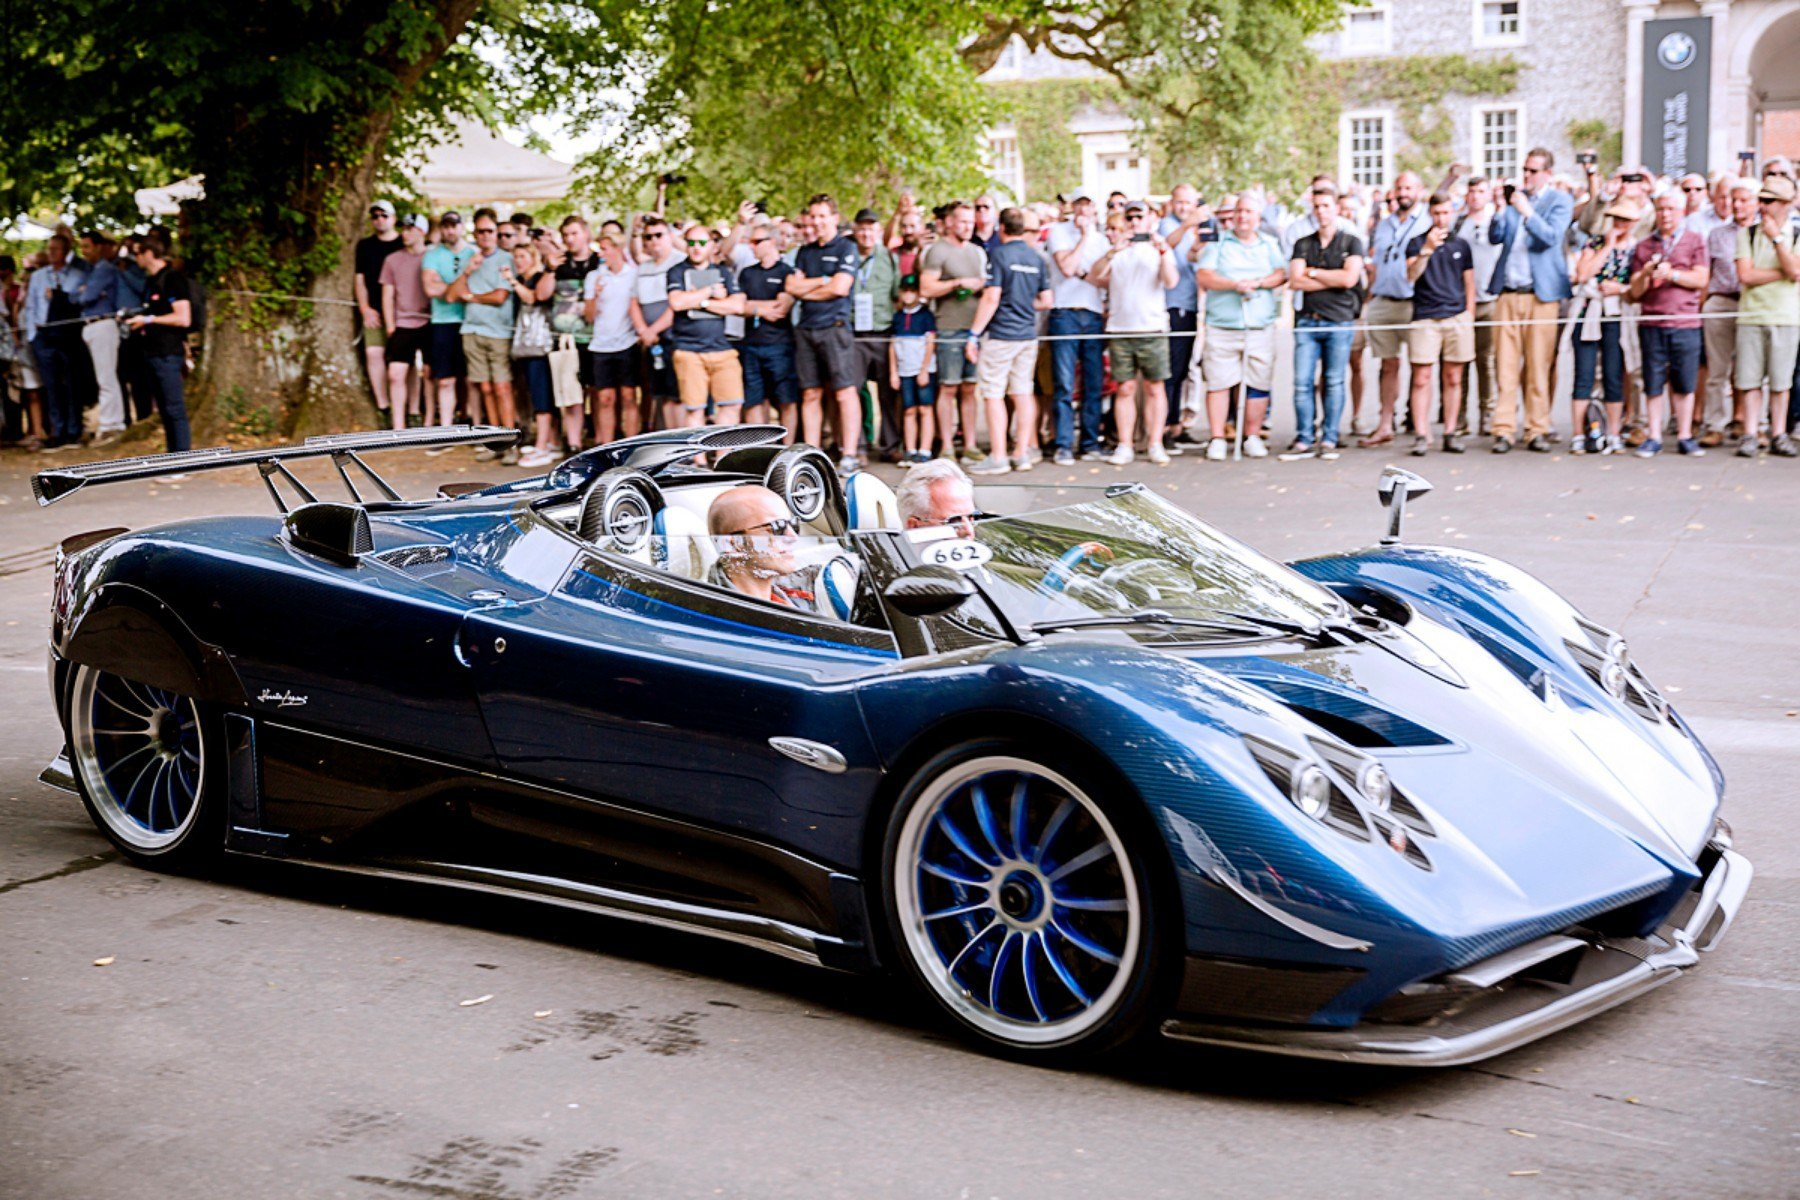 New The Pagani Zonda Hp Barchetta Is The Most Expensive New On This Month